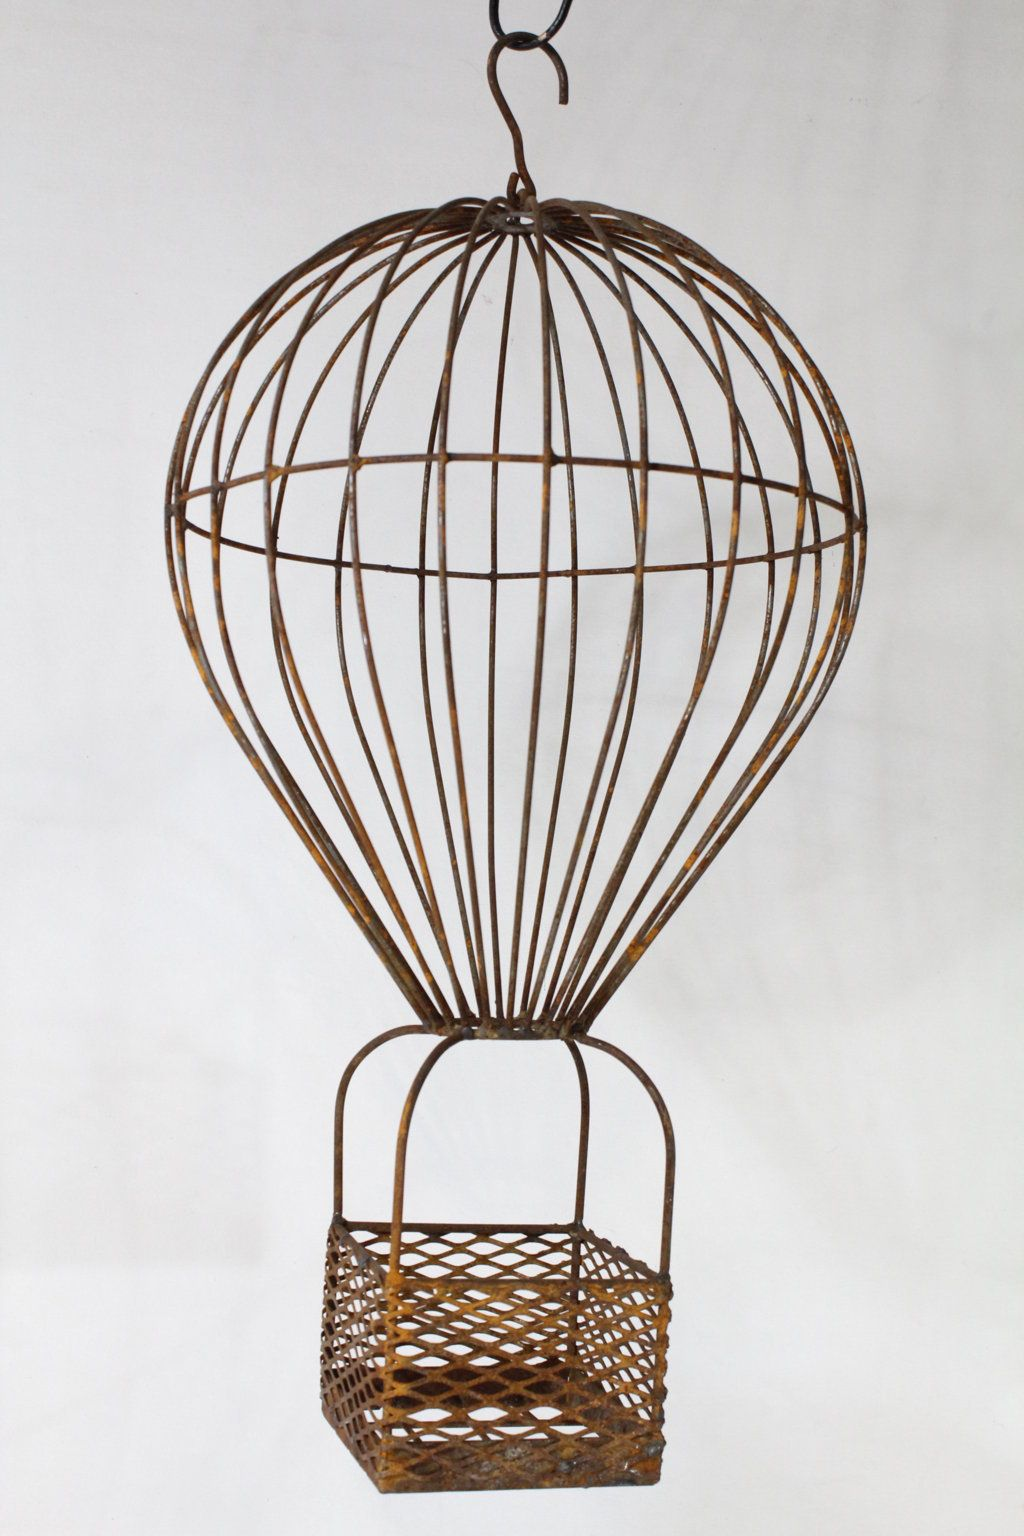 Wrought Iron Small Hot Air Balloon Basket Plant Container ...